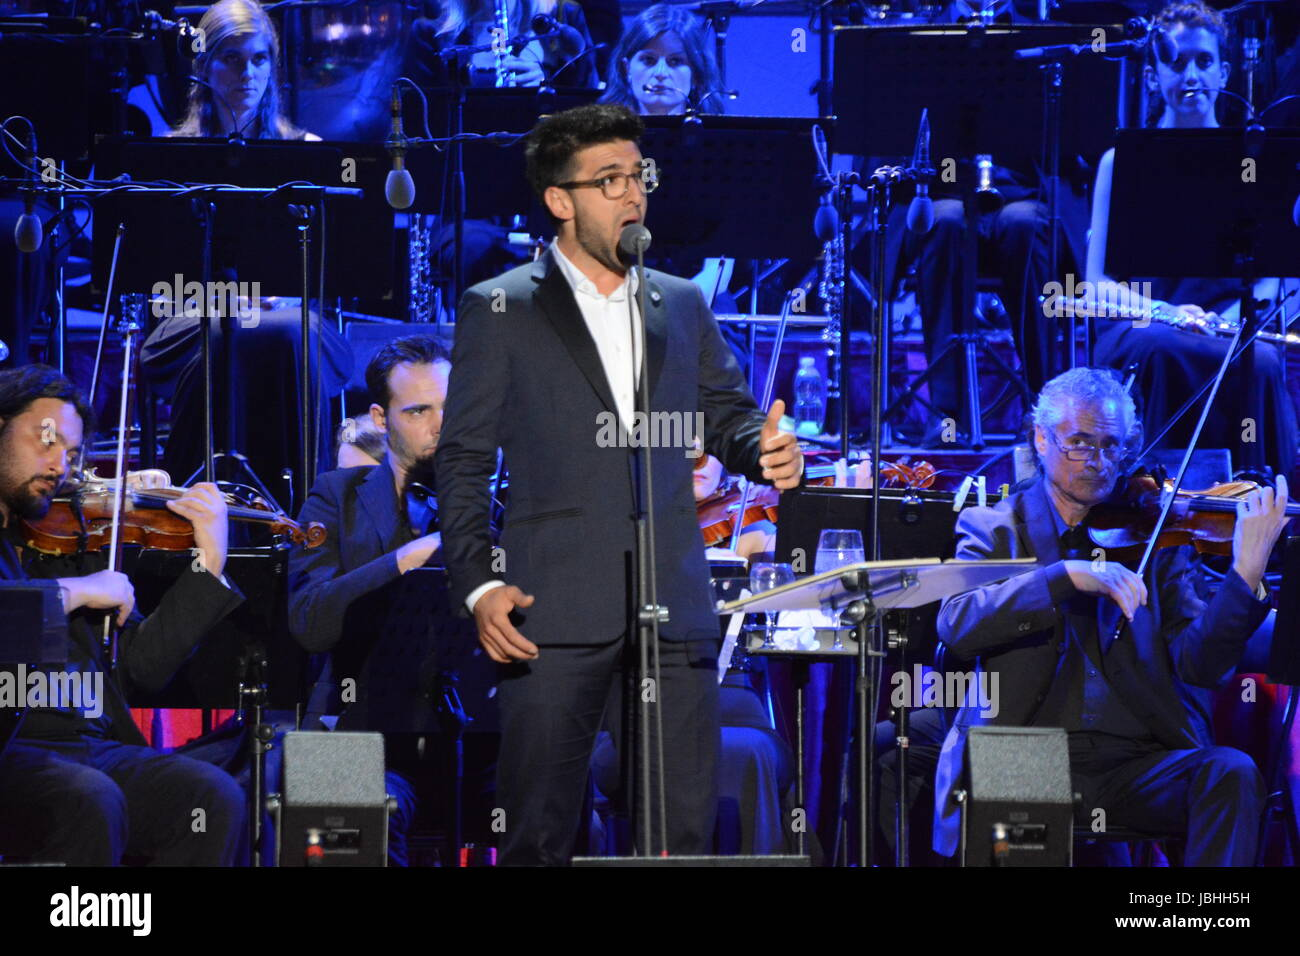 """Naples, Italy. 10rd June, 2017. Il Volo performing for the """"Notte Magica – A Tribute To The Three Tenors"""" at ETES - Stock Image"""